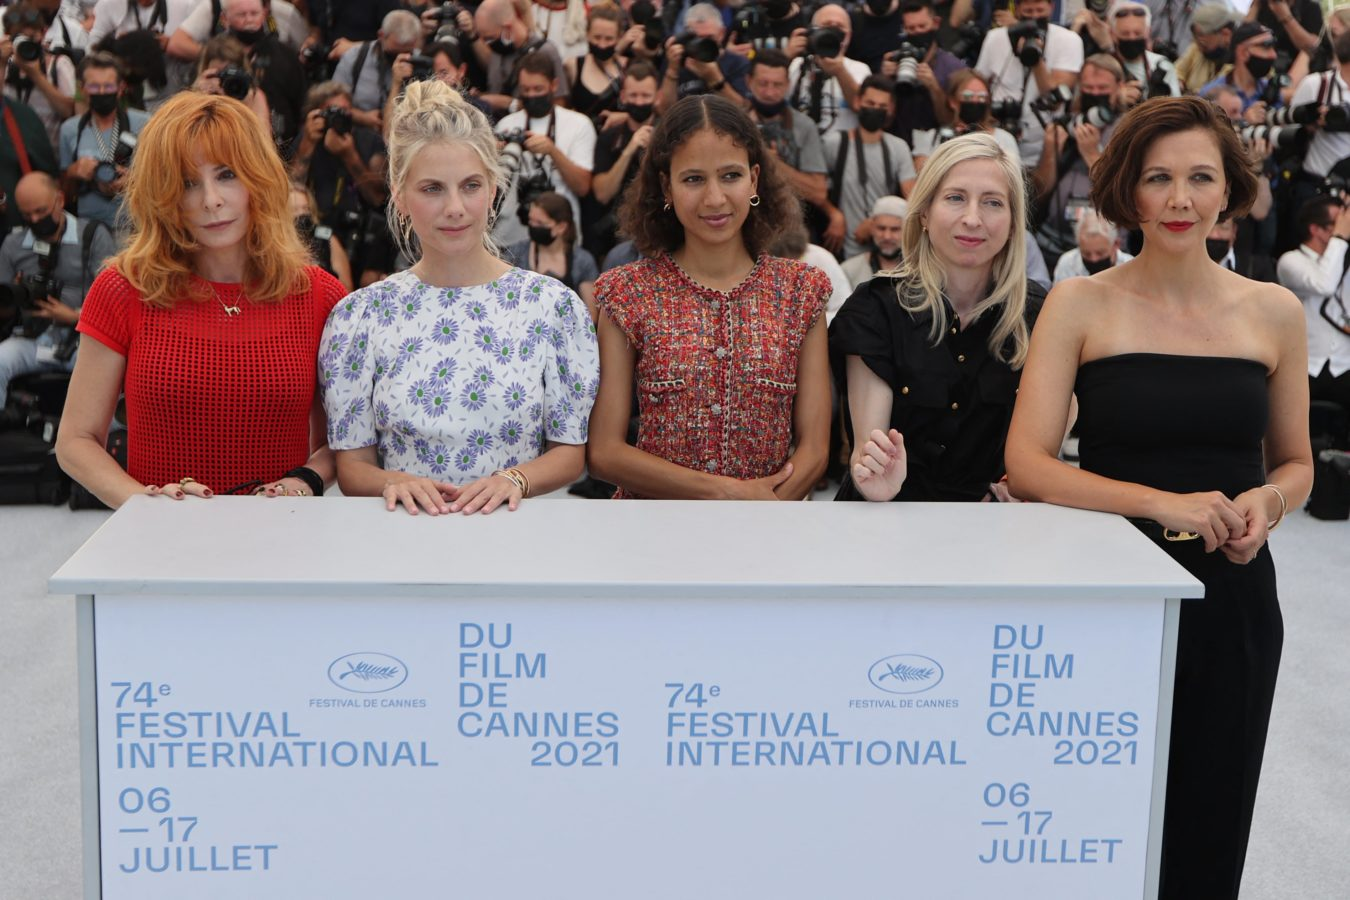 Who are the five women jury members at Cannes Film Festival 2021?